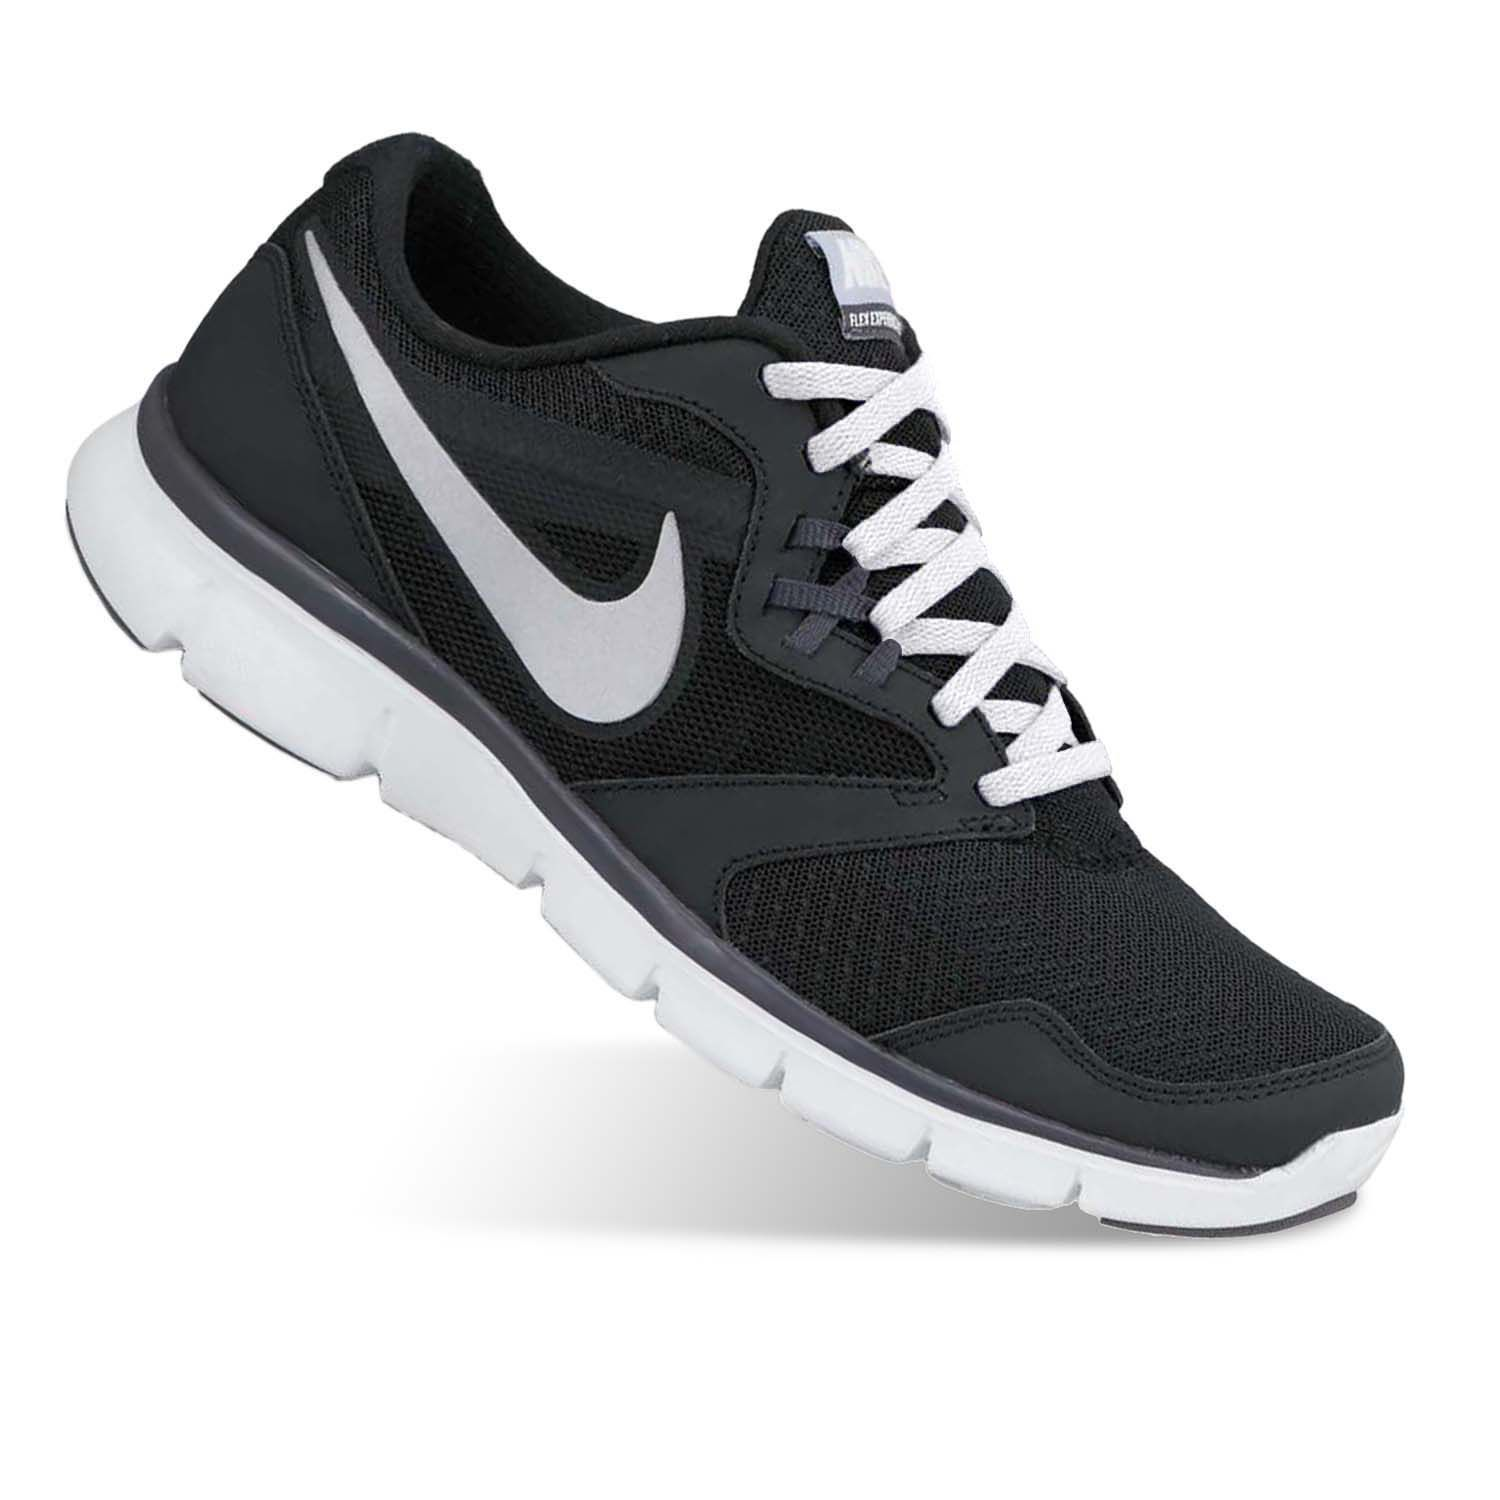 Nike Womens Trainers Black And White thenavyinn.co.uk/